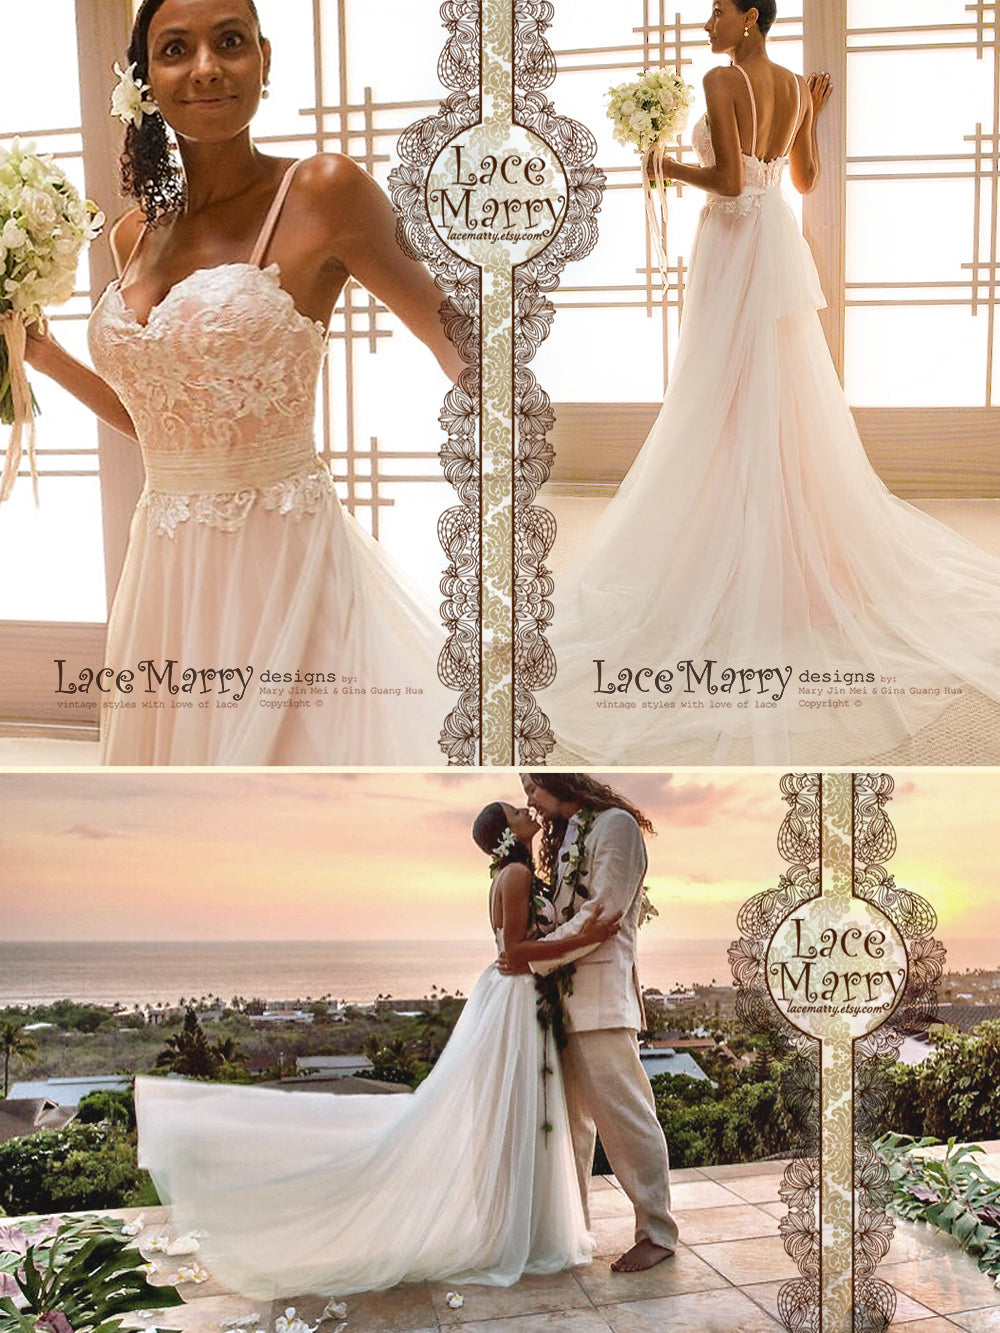 Rose Gold Beach Wedding Dress from Lace and Soft Tulle   LaceMarry